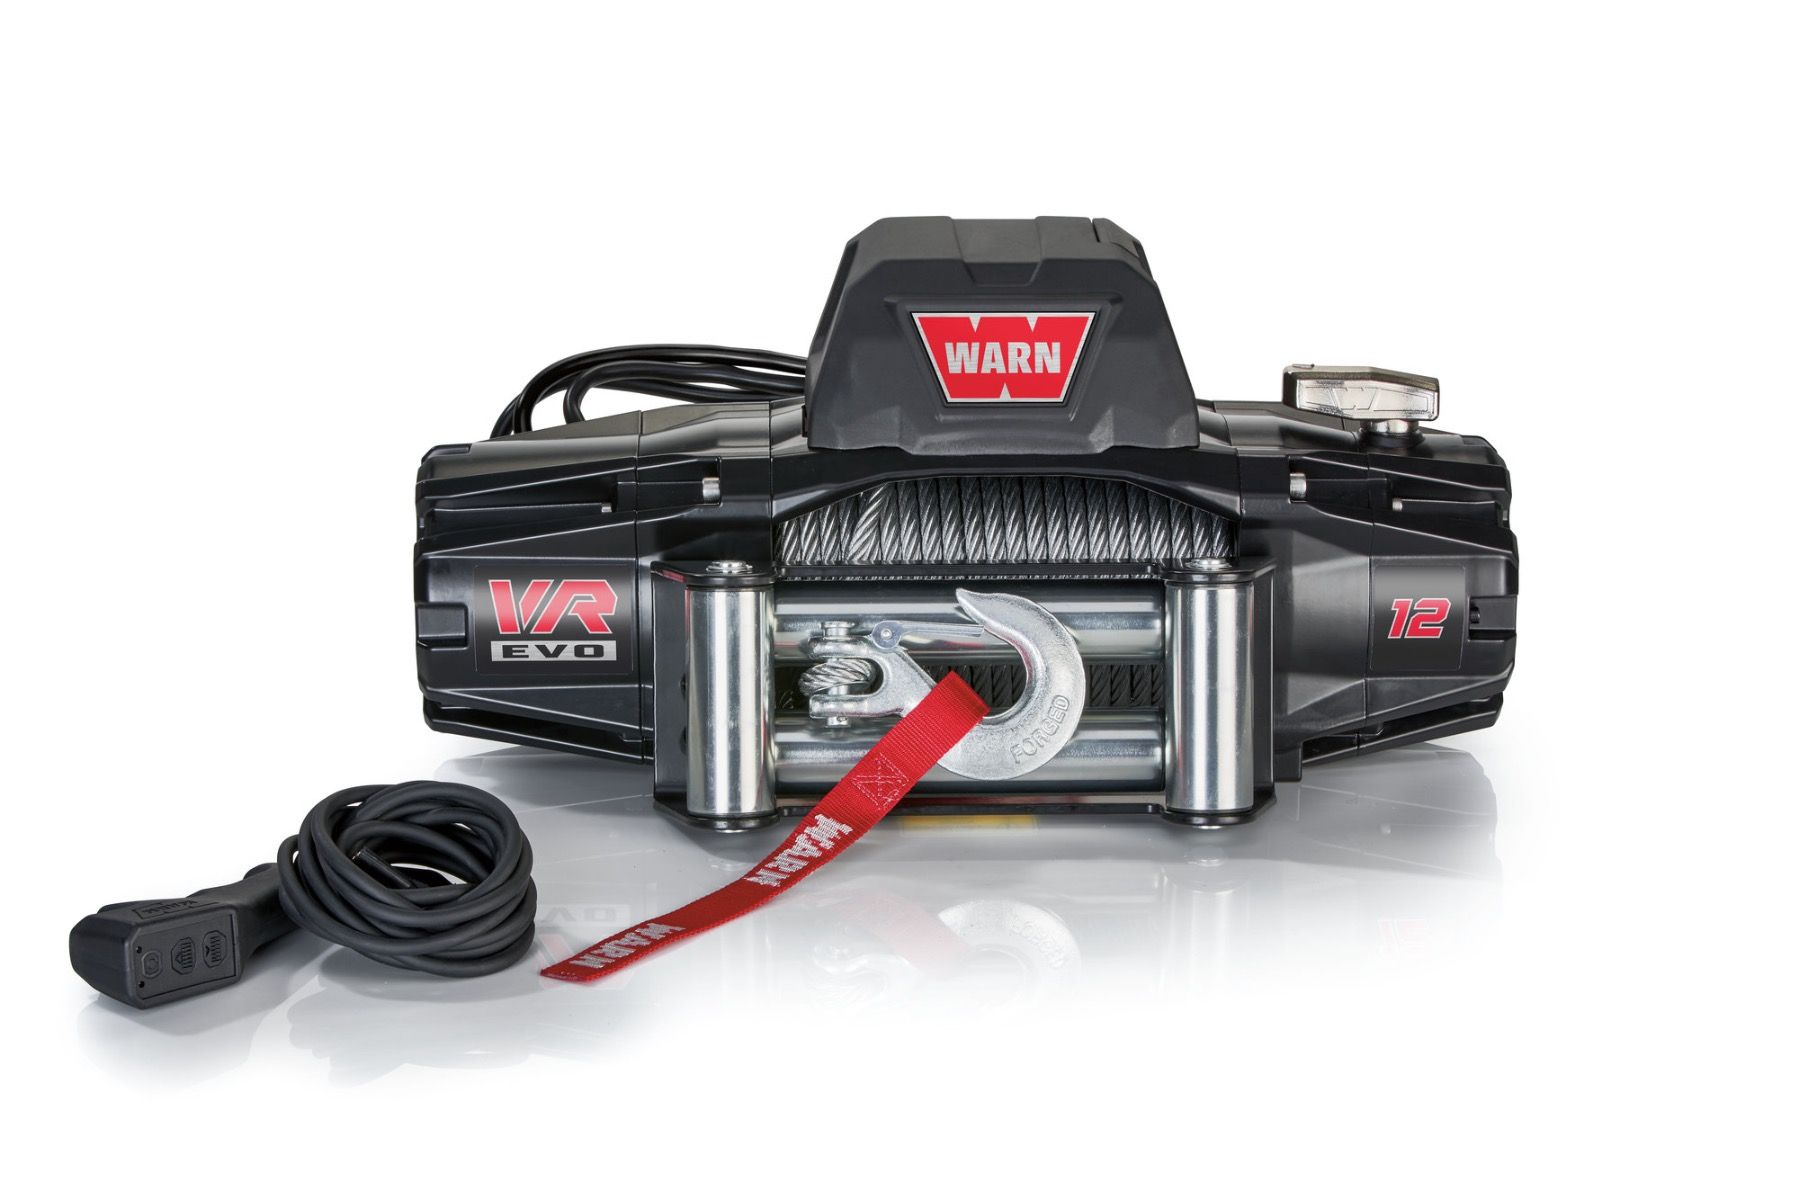 warn-103254-vr-evo-12-series-12000lb-winch-steel-cable